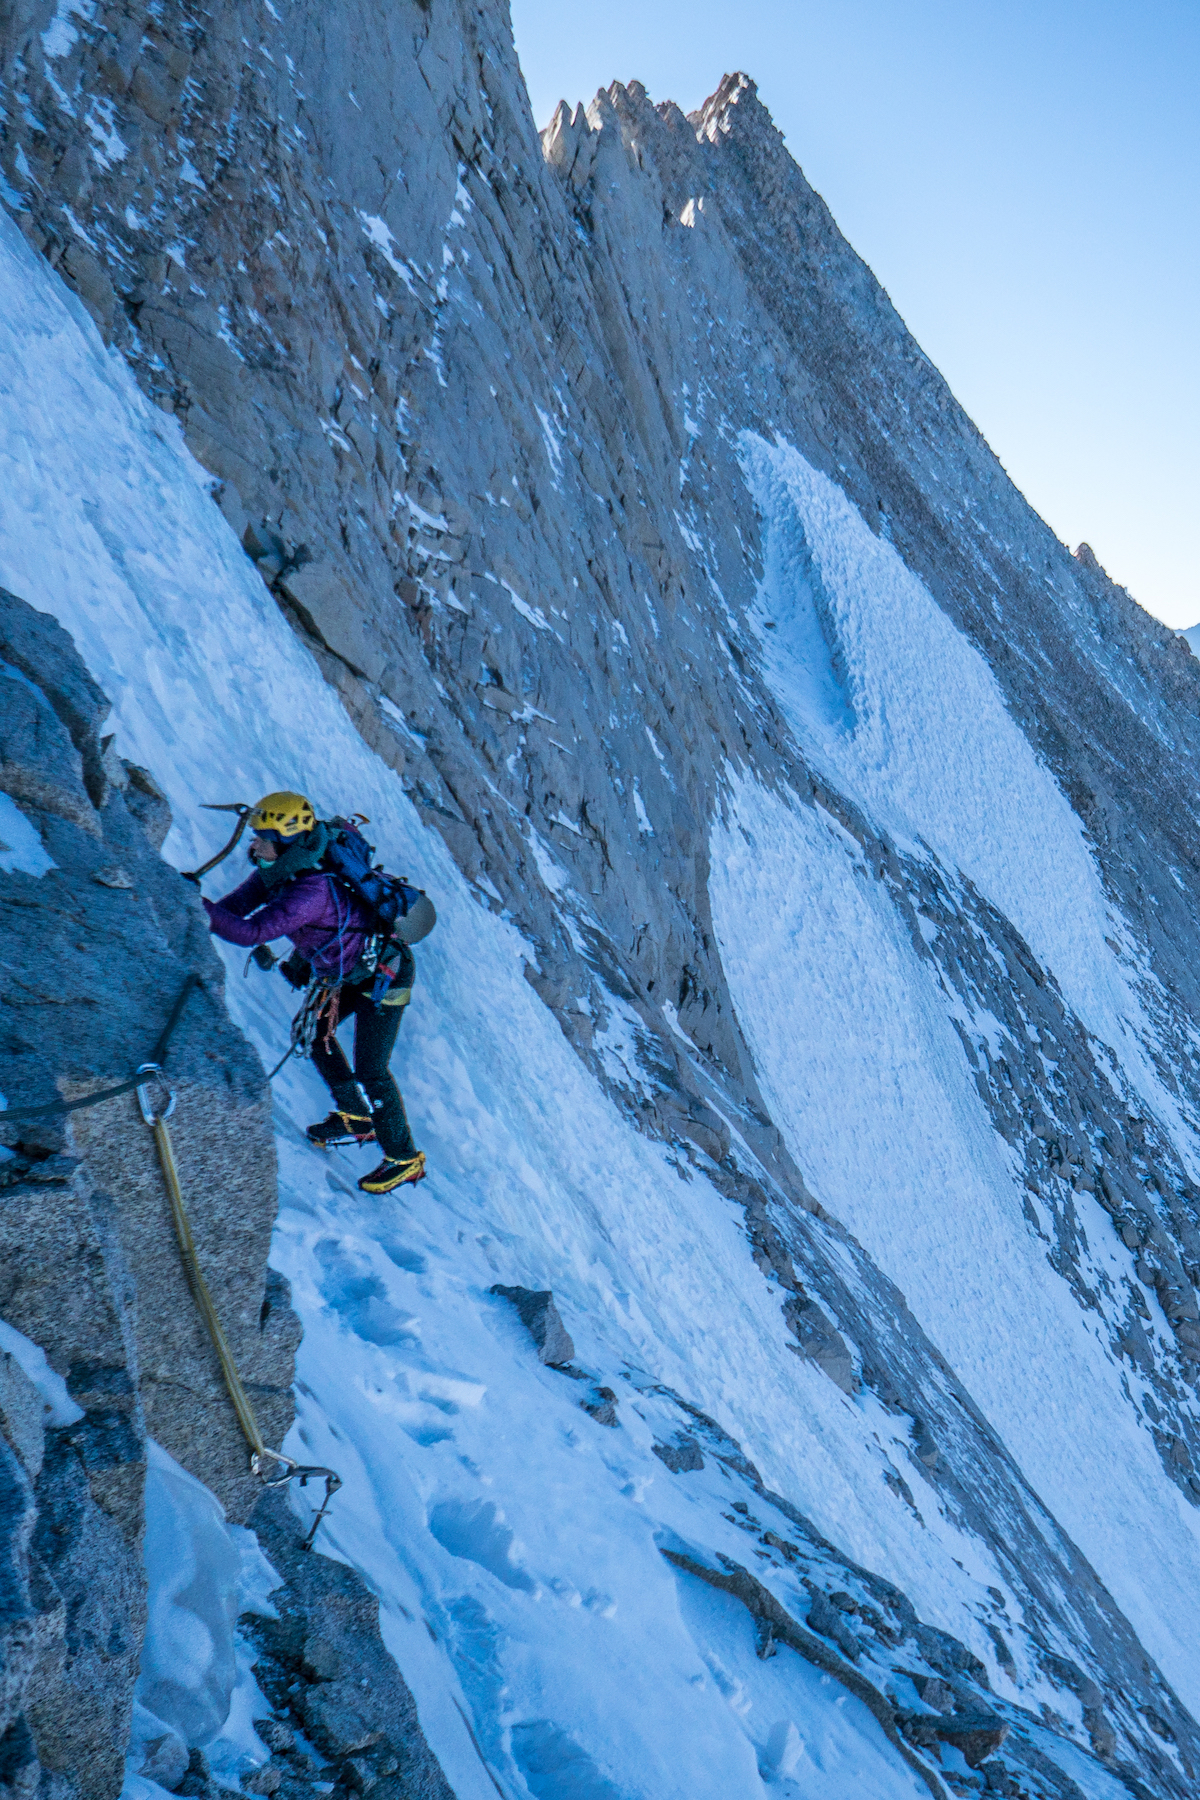 Whitney Clark traverses to the belay after climbing the hanging glacial ice midway up a new route (Land of Milk and Honey, IV 5.8+ M3 R 65 degrees, 1,000') on the northwest face of Mt Russell (14,094') in the Sierra Nevada Range, California. [Photo] Tad McCrea